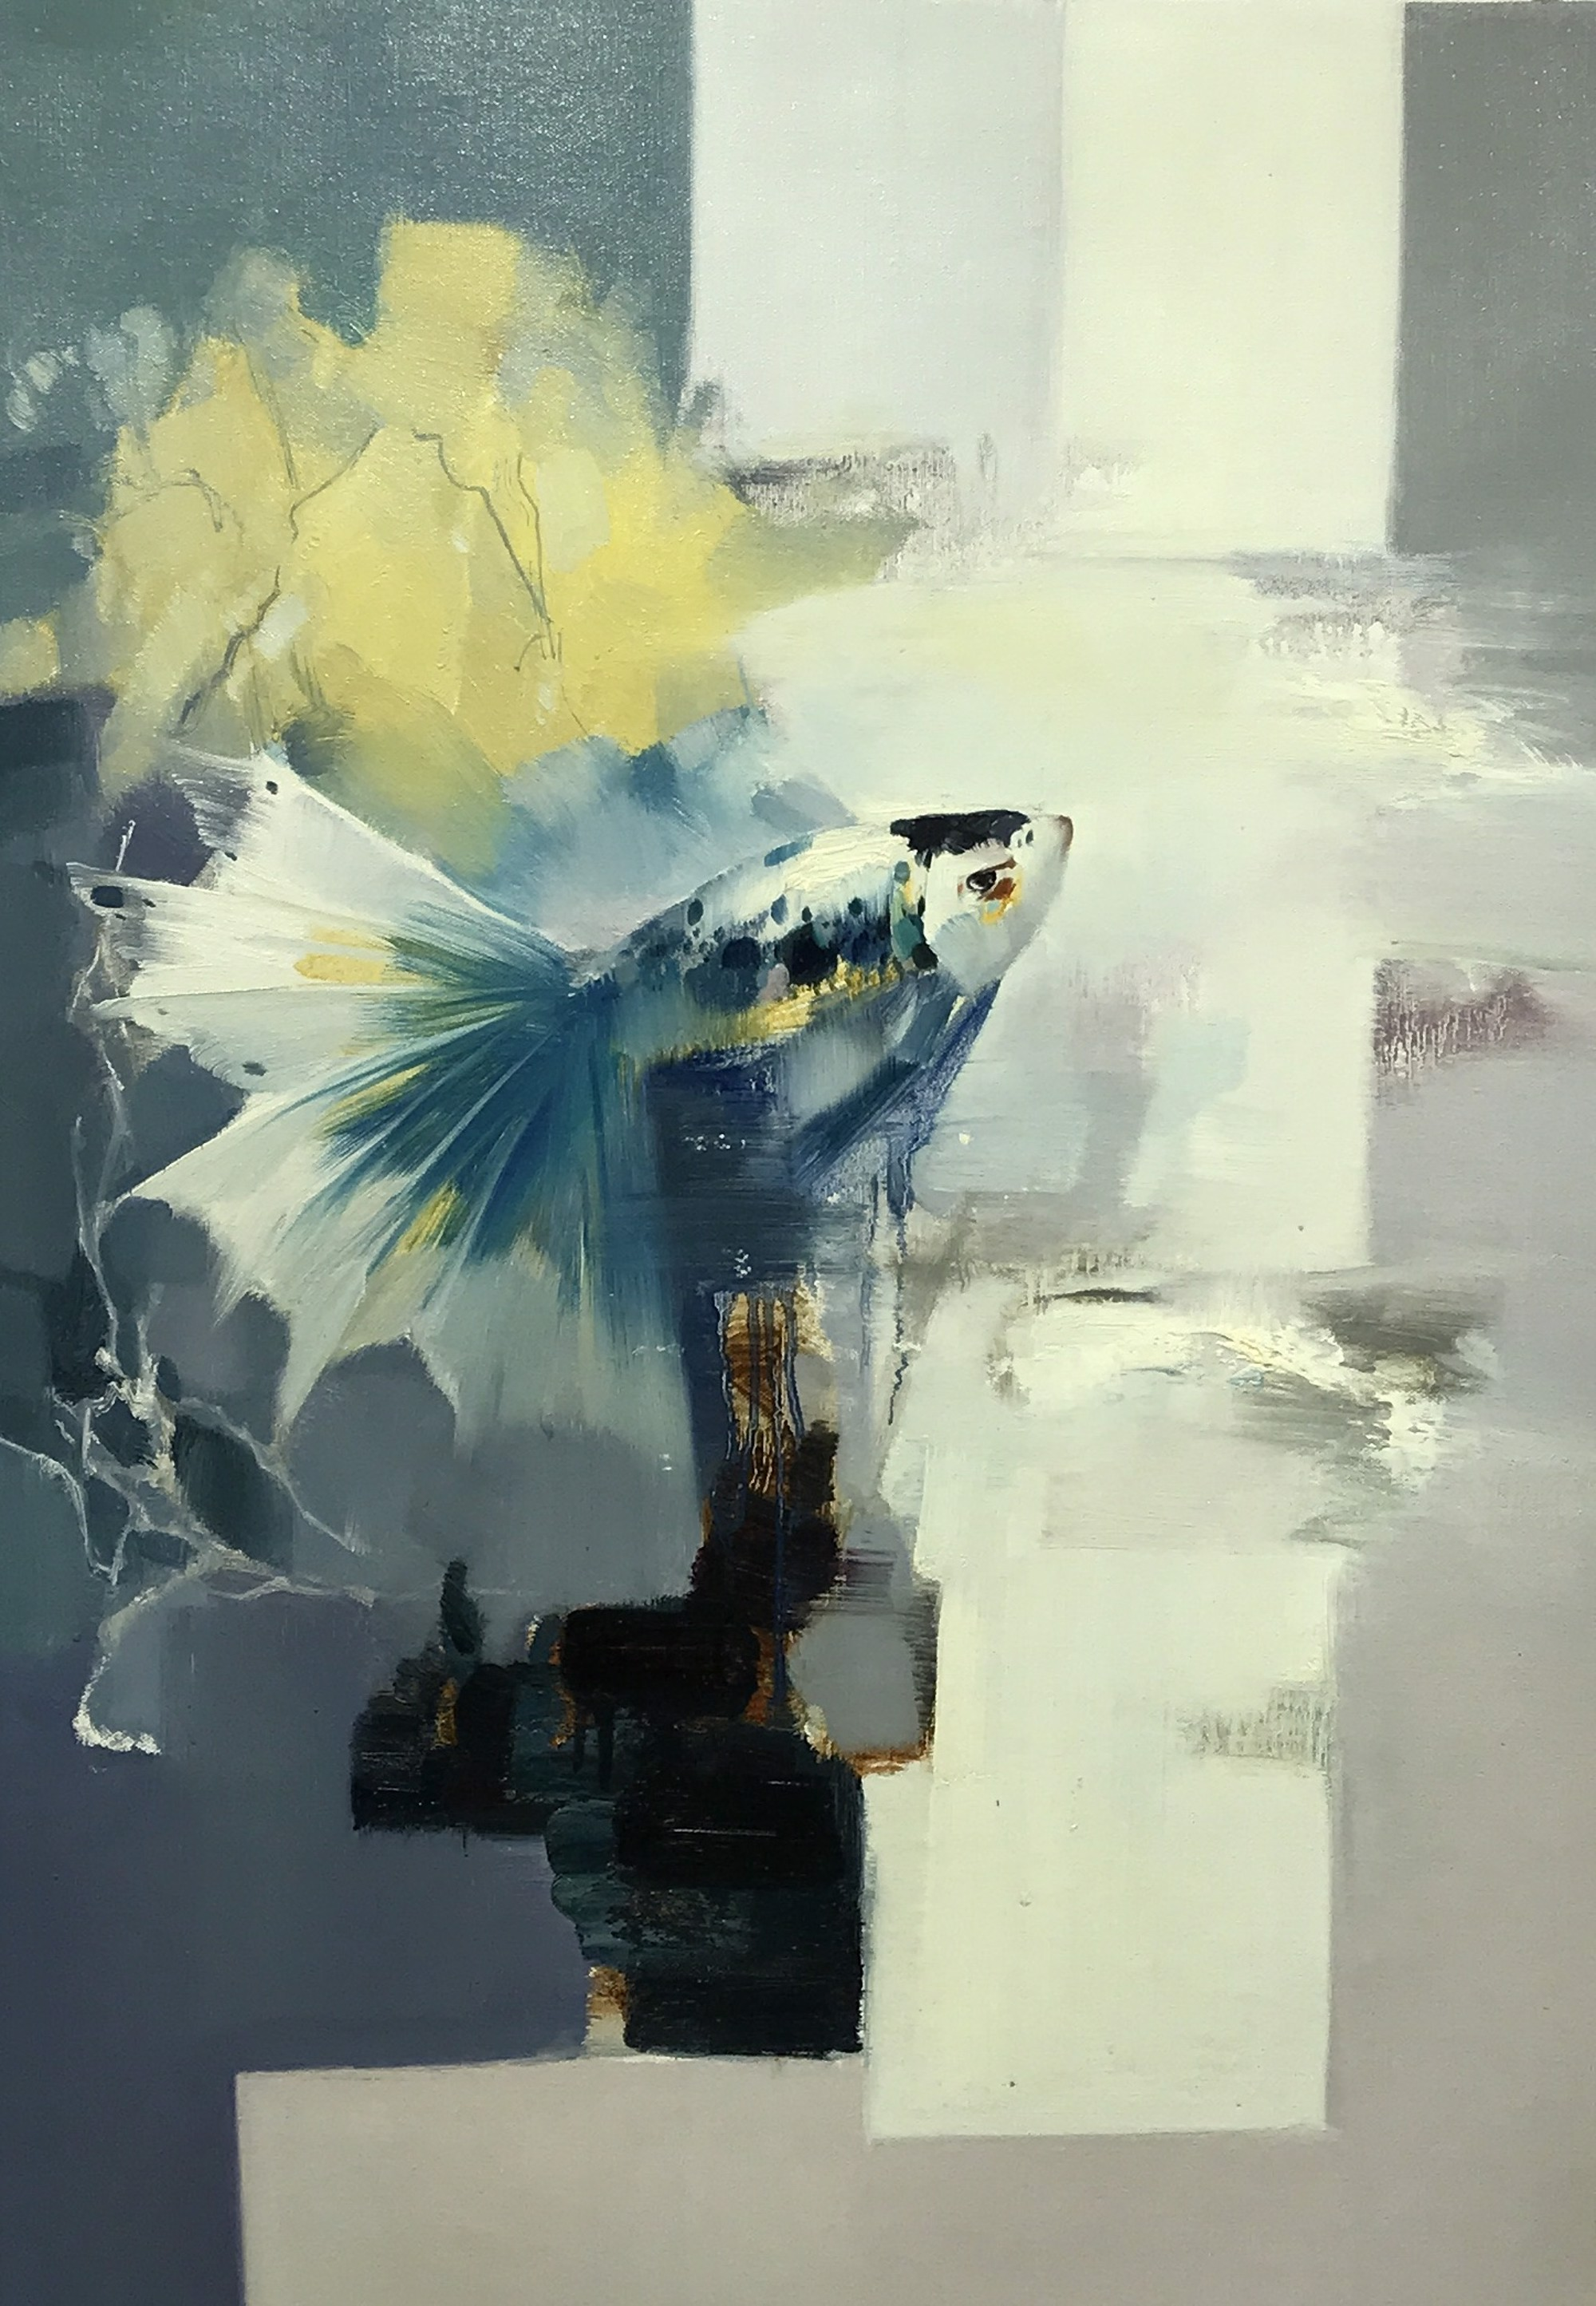 SINGLE FISH by VARIOUS WORKS